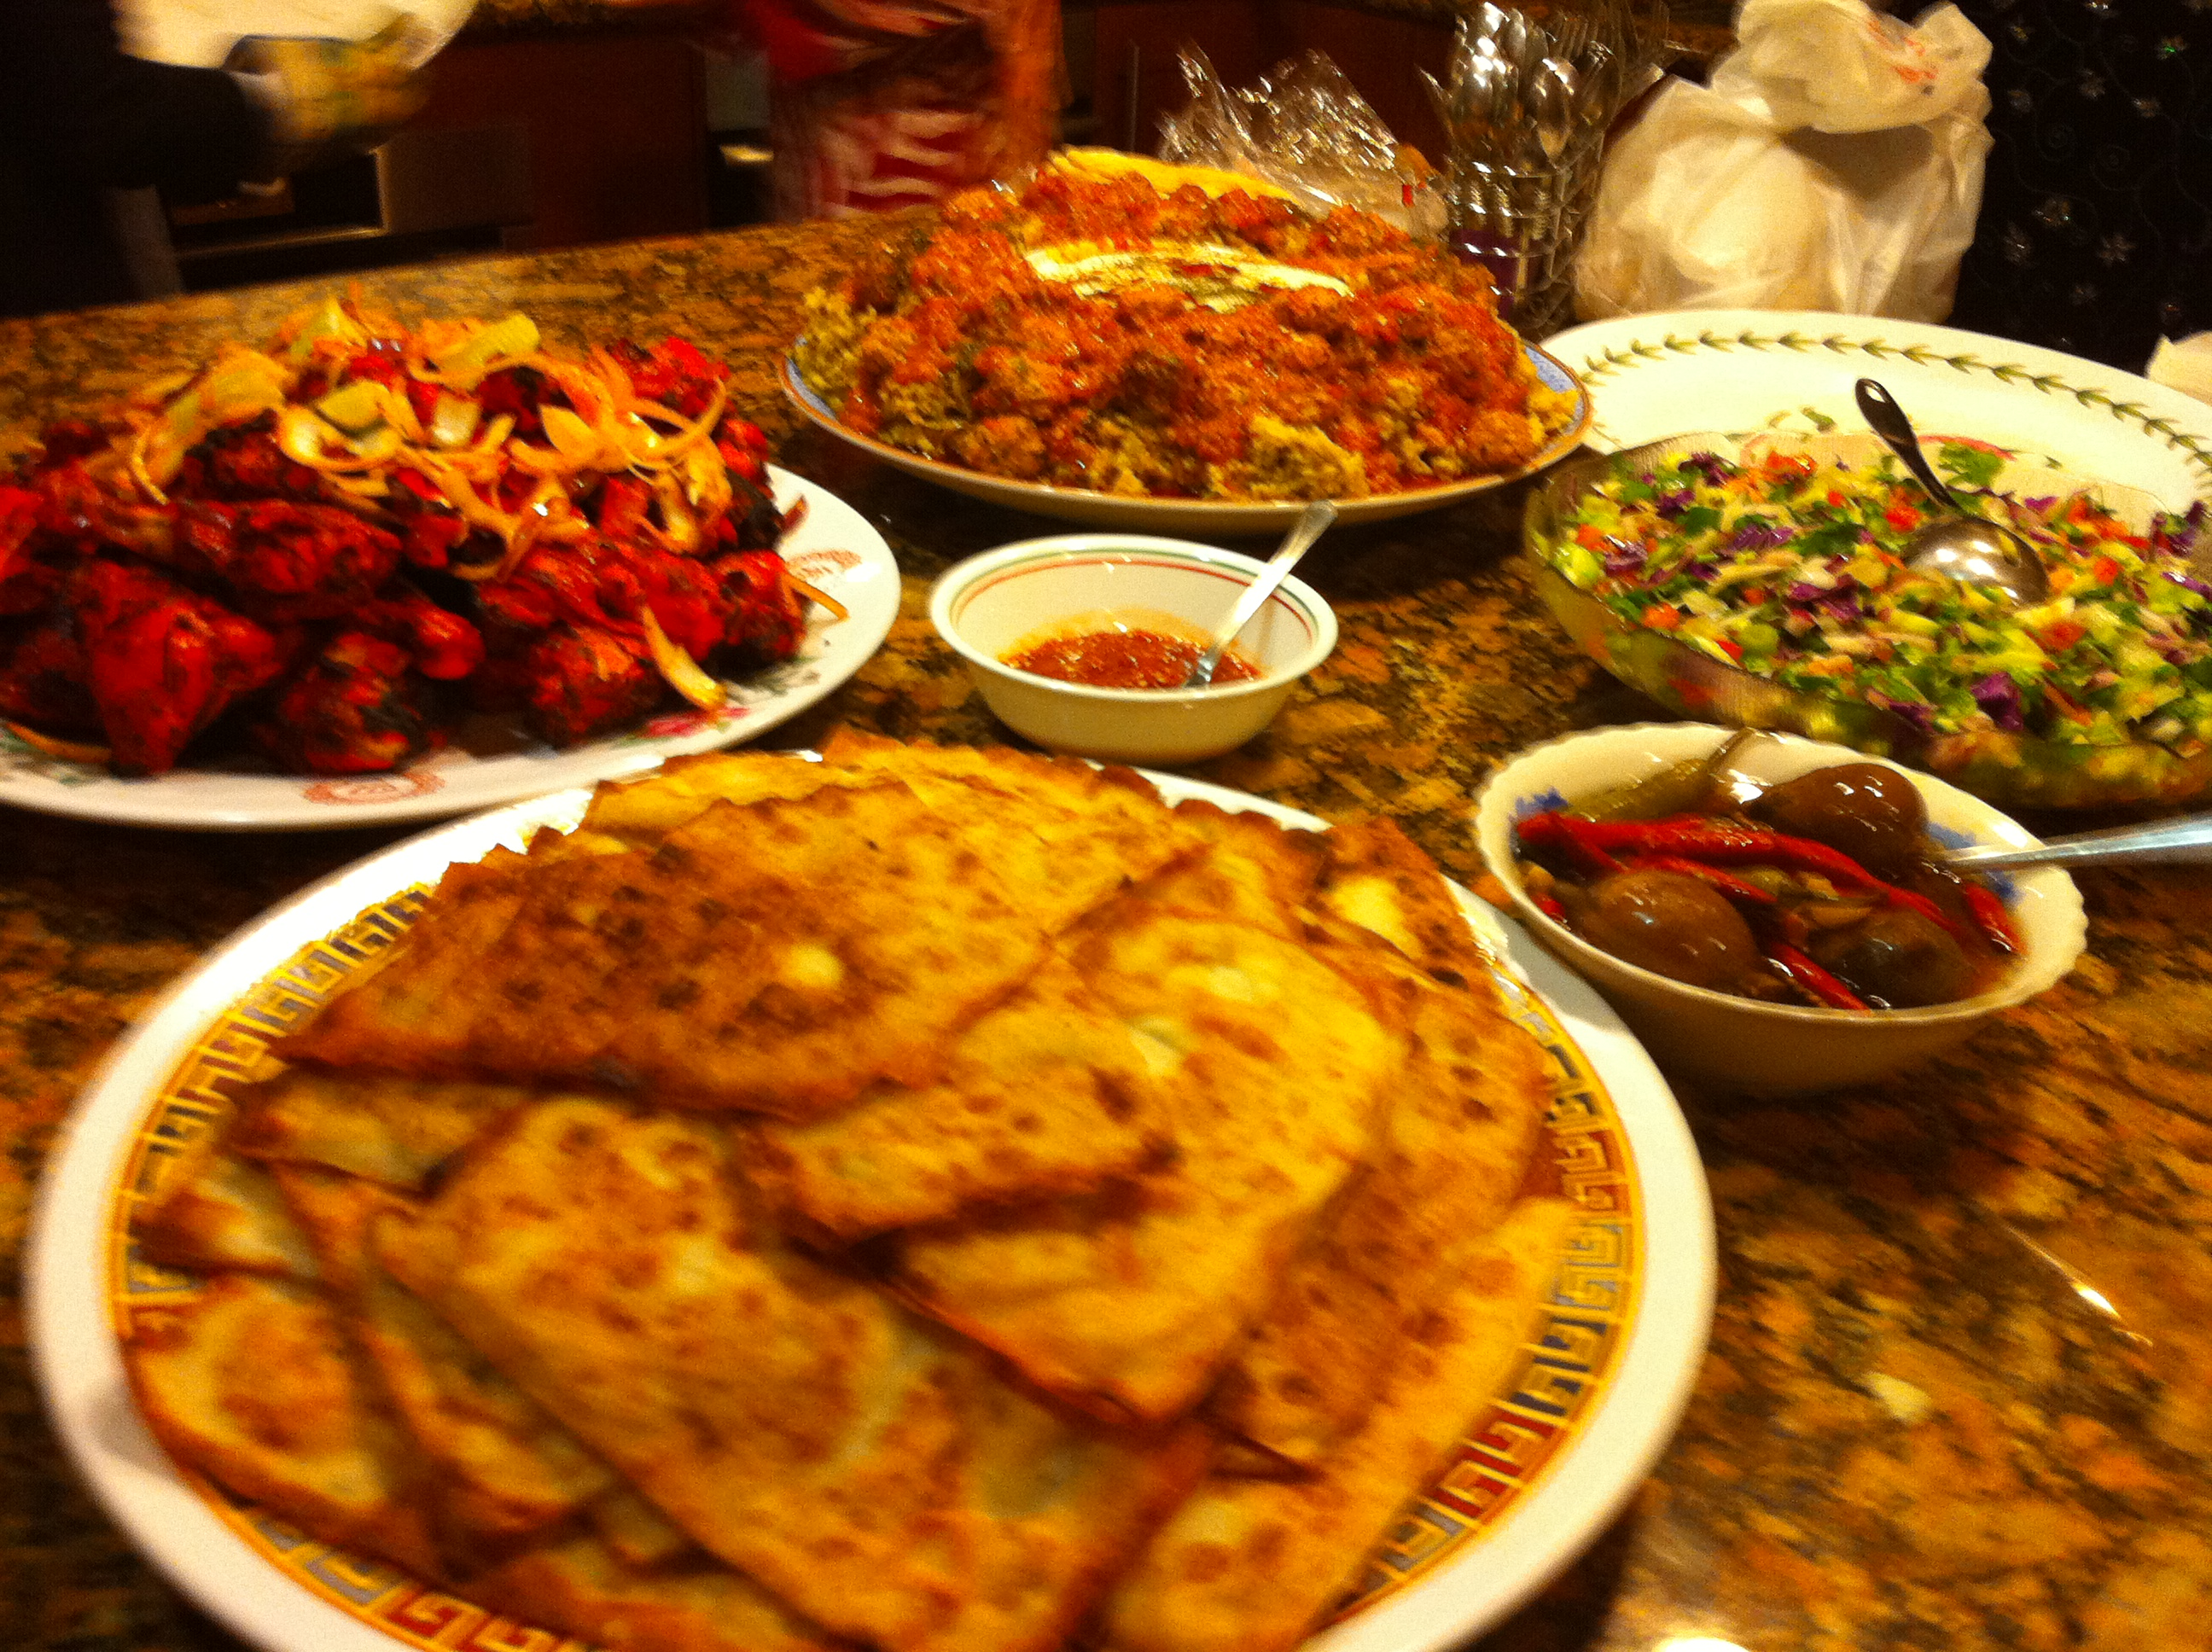 Afghan food by By ANBI (Own work) [CC-BY-SA-3.0 (http://creativecommons.org/licenses/by-sa/3.0)], via Wikimedia Commons